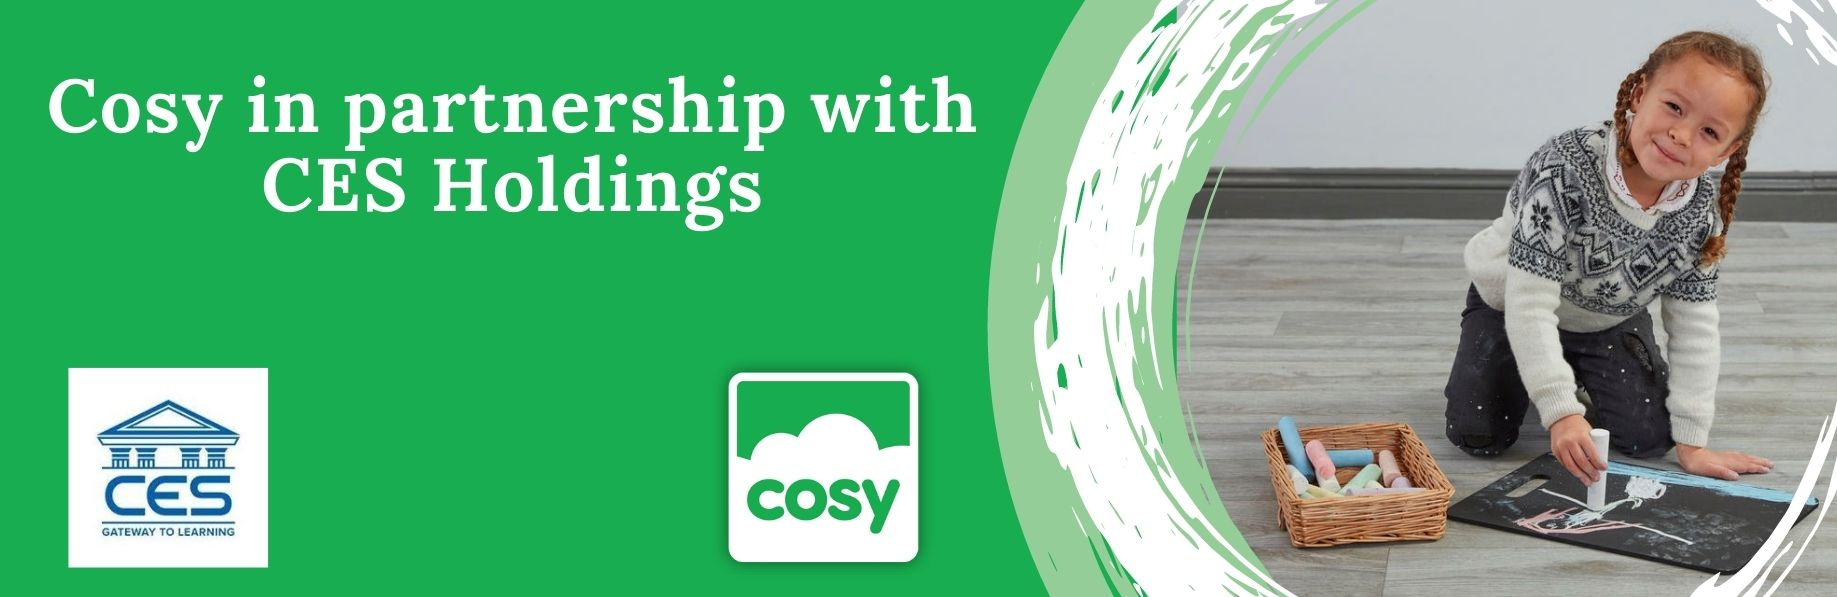 Cosy in partnership with CES Holdings